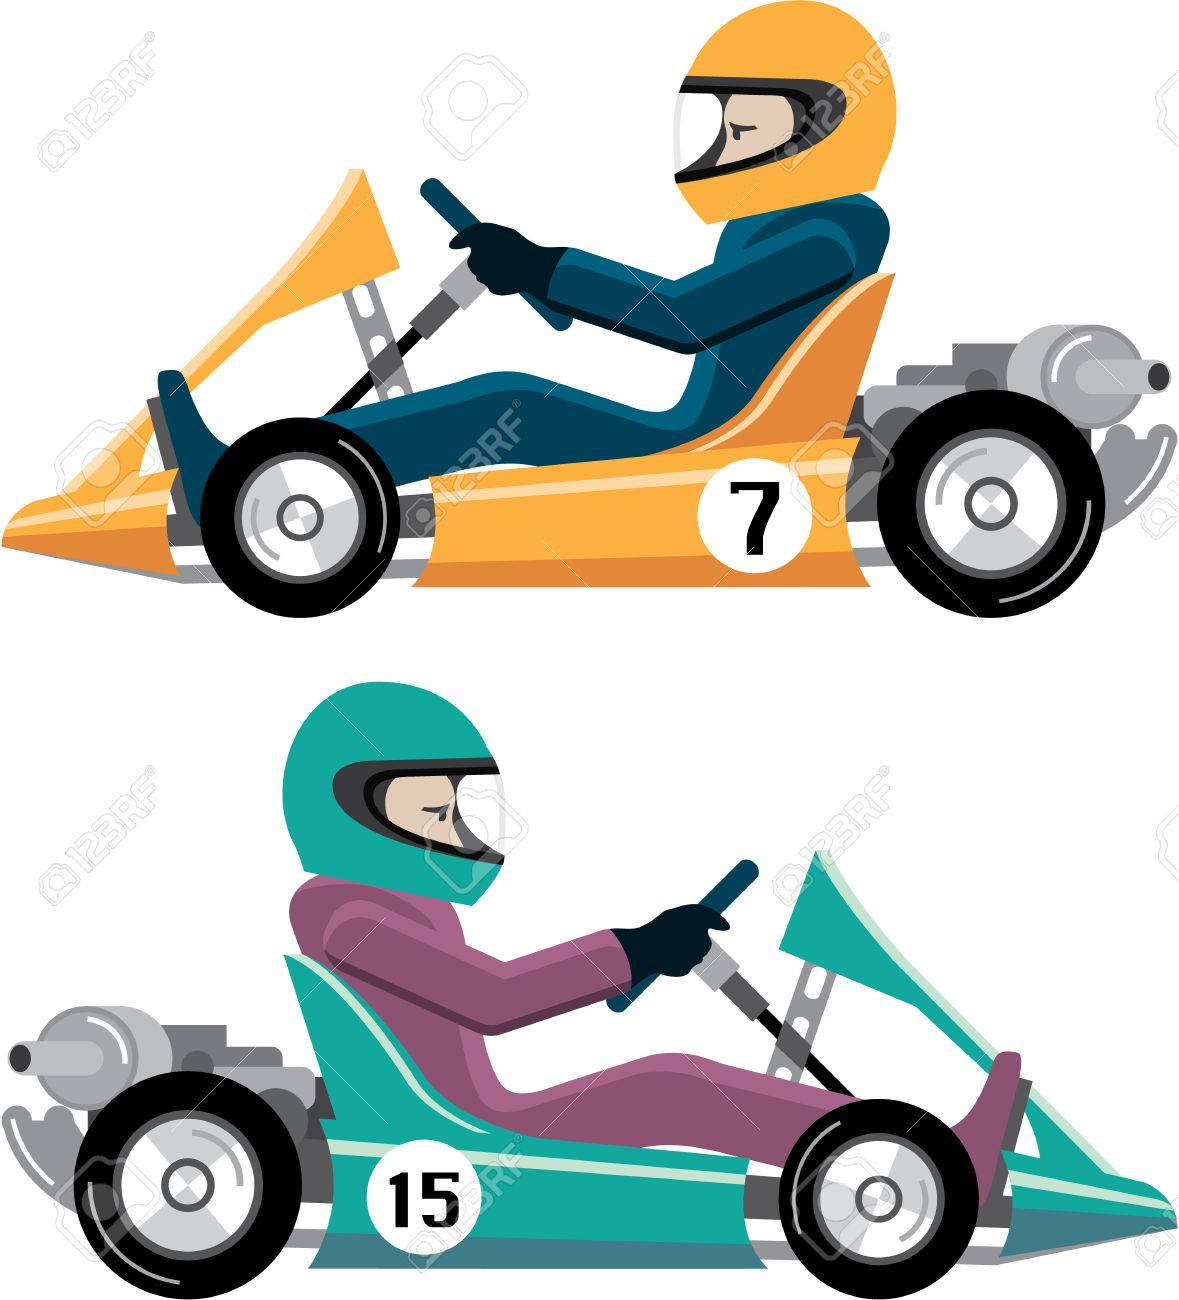 Karting Go Cart race vehicle with a driver illustration clip.